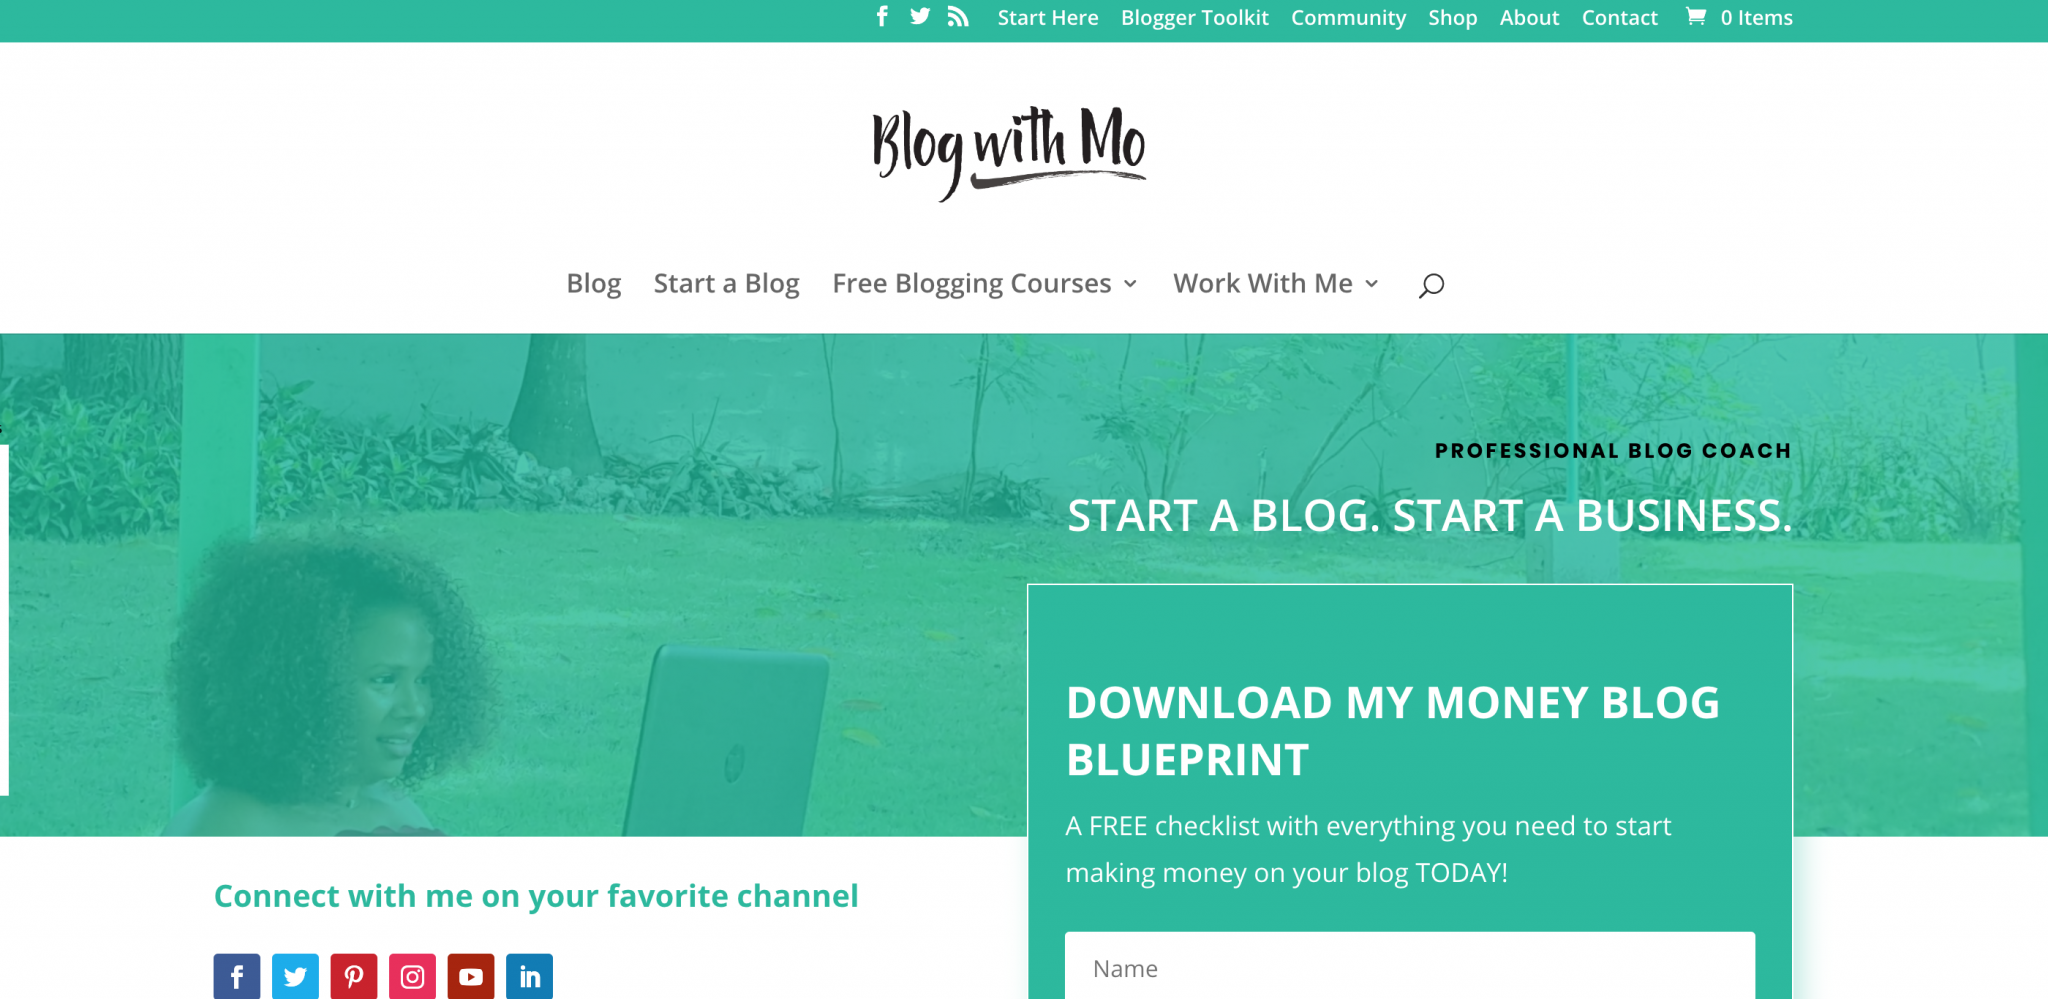 Blog With Mo